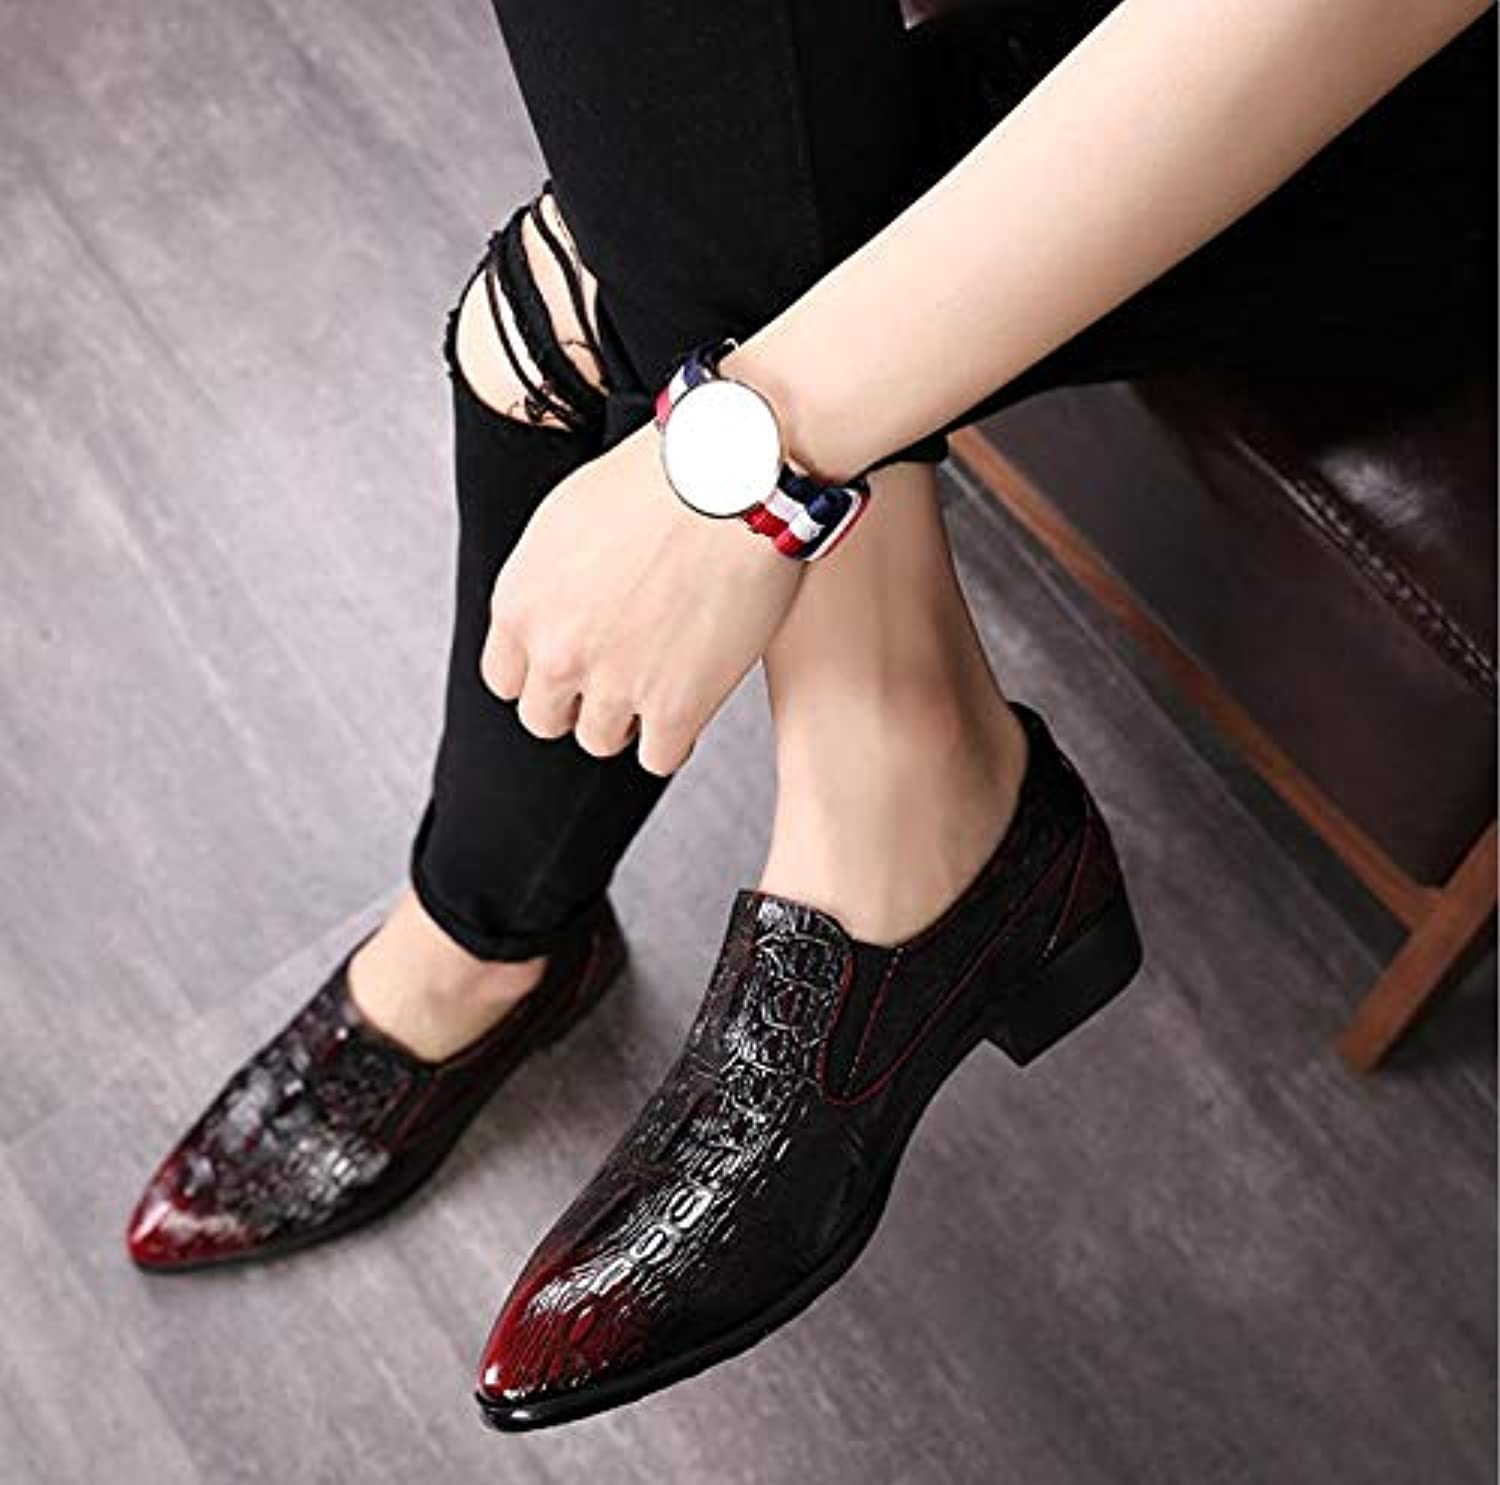 LOVDRAM Men'S Leather shoes Big Size New Men Dress shoes Fashion Man Full Grain Genuine Leather shoes Social Sapato Male Oxfords Flats shoes 6.5 As Pic